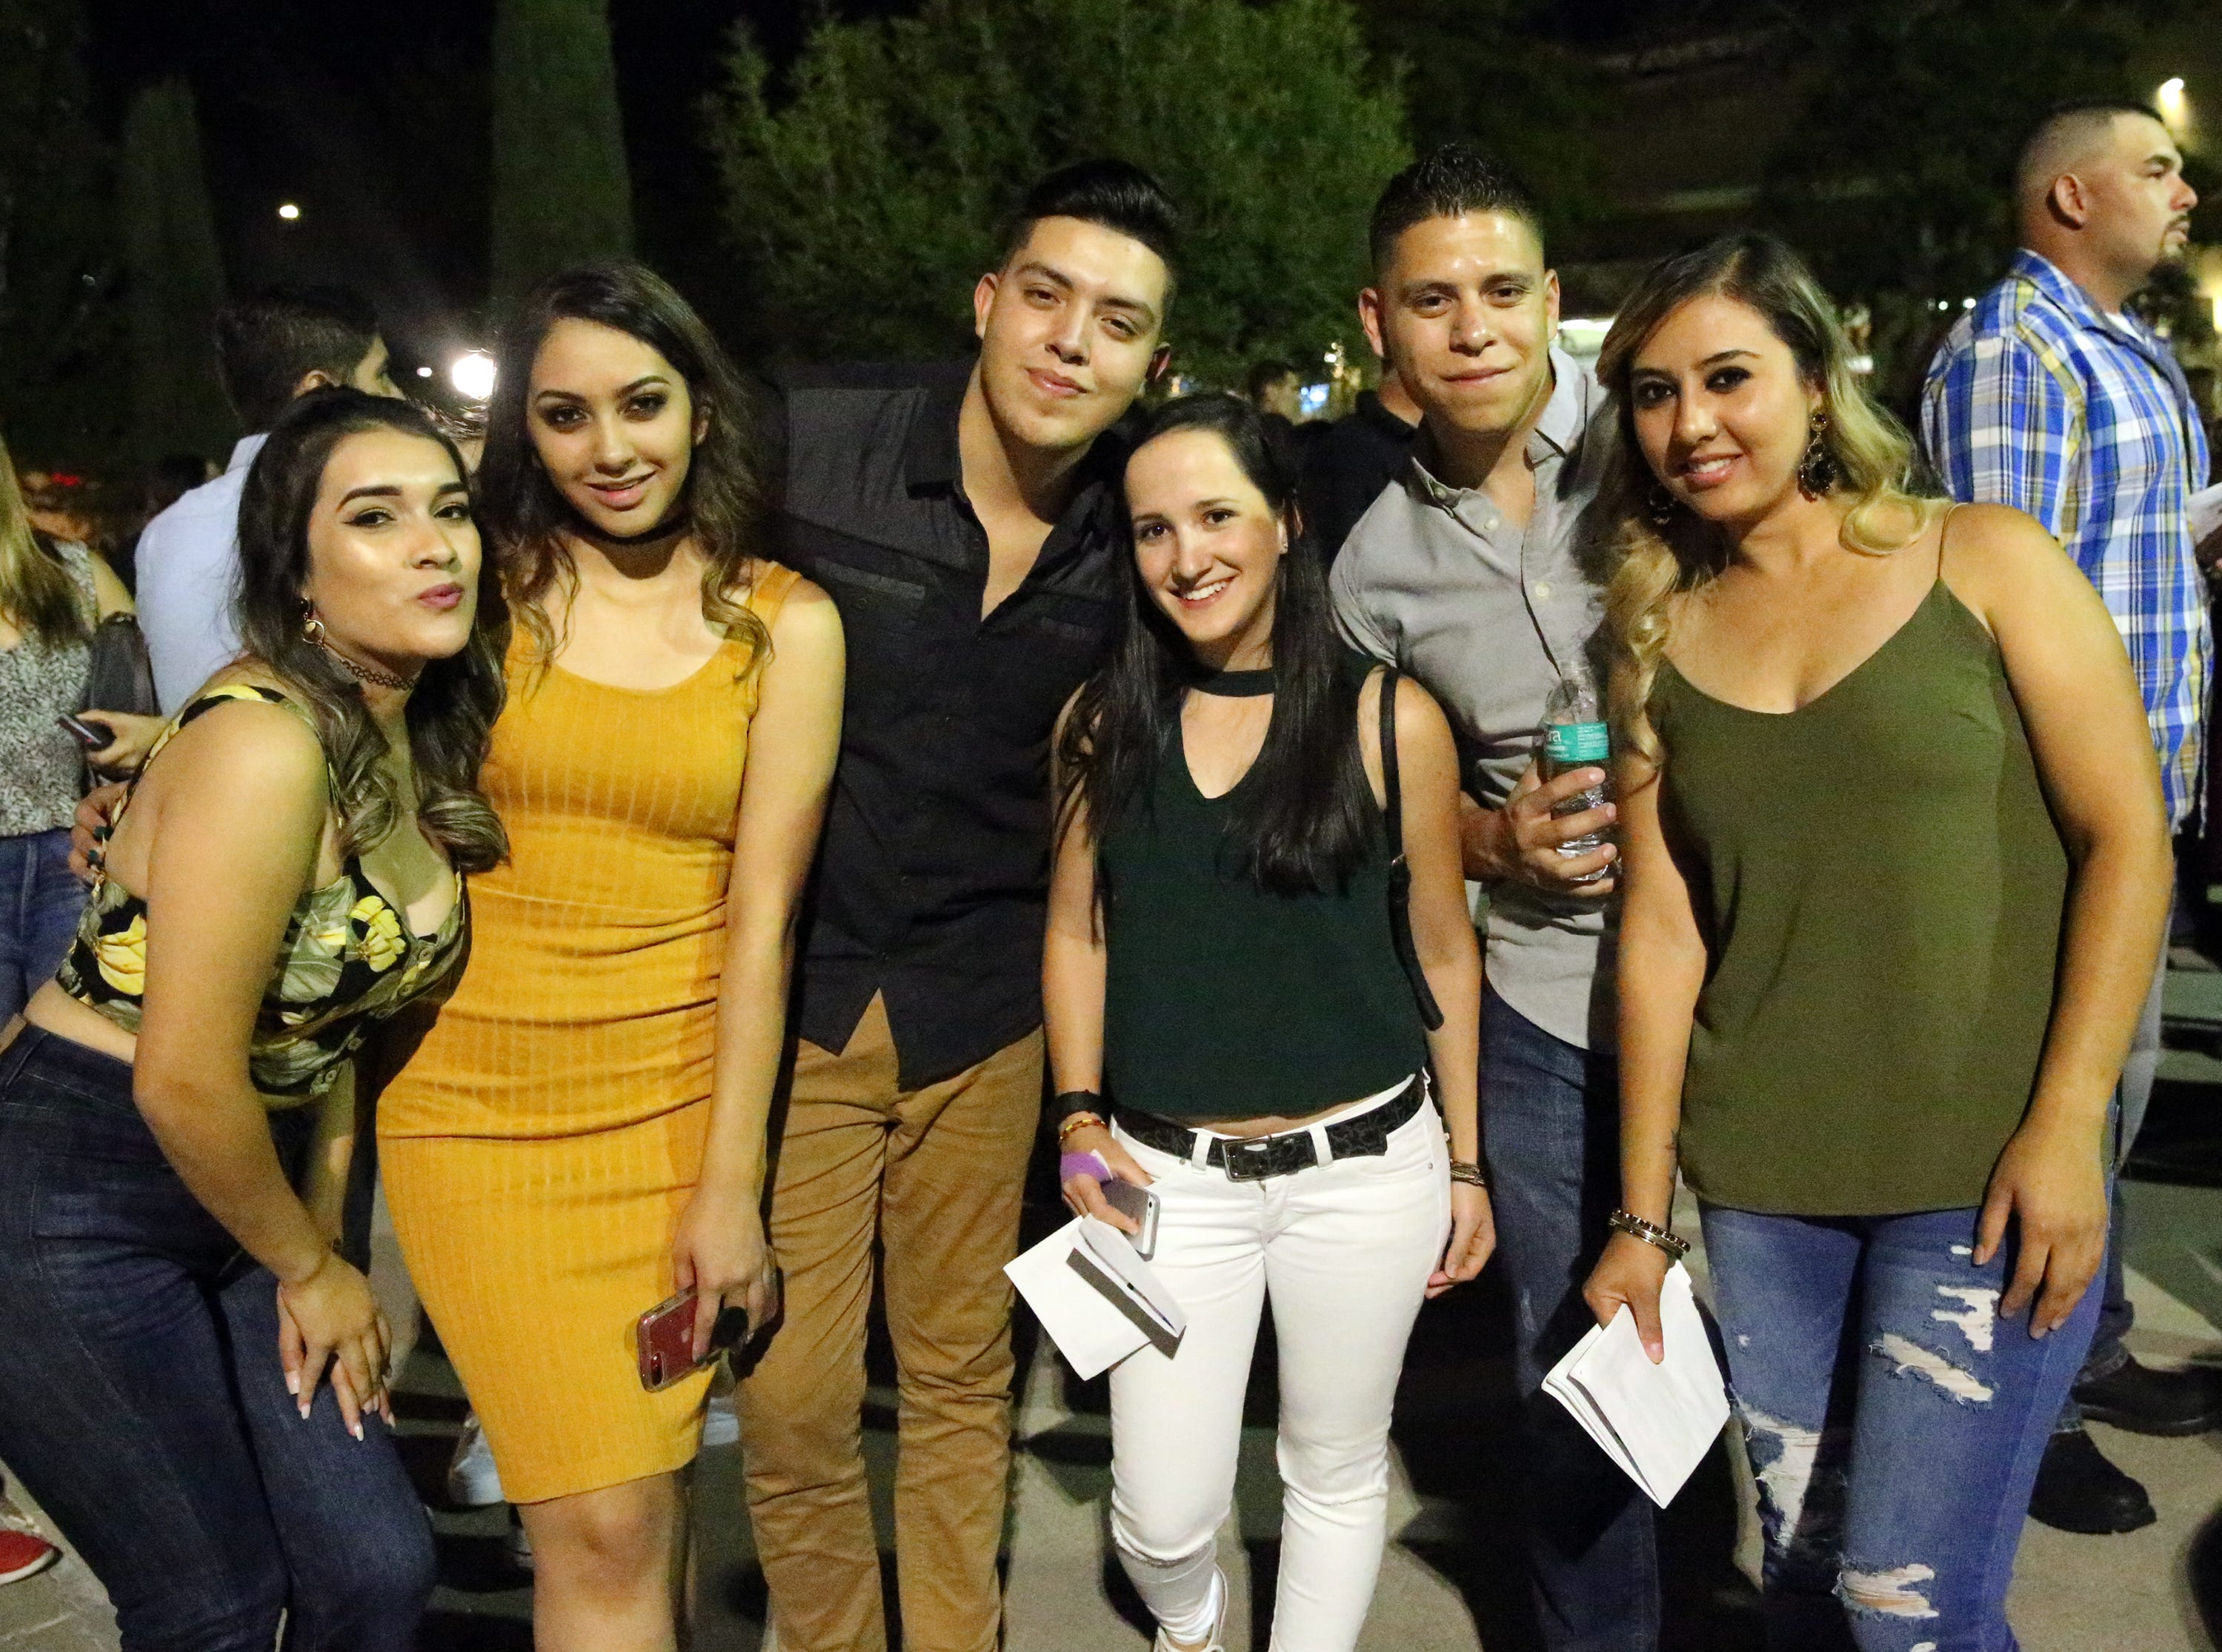 Stephanie Venegas, left, and friends outside the Don Haskins Center Sunday night.